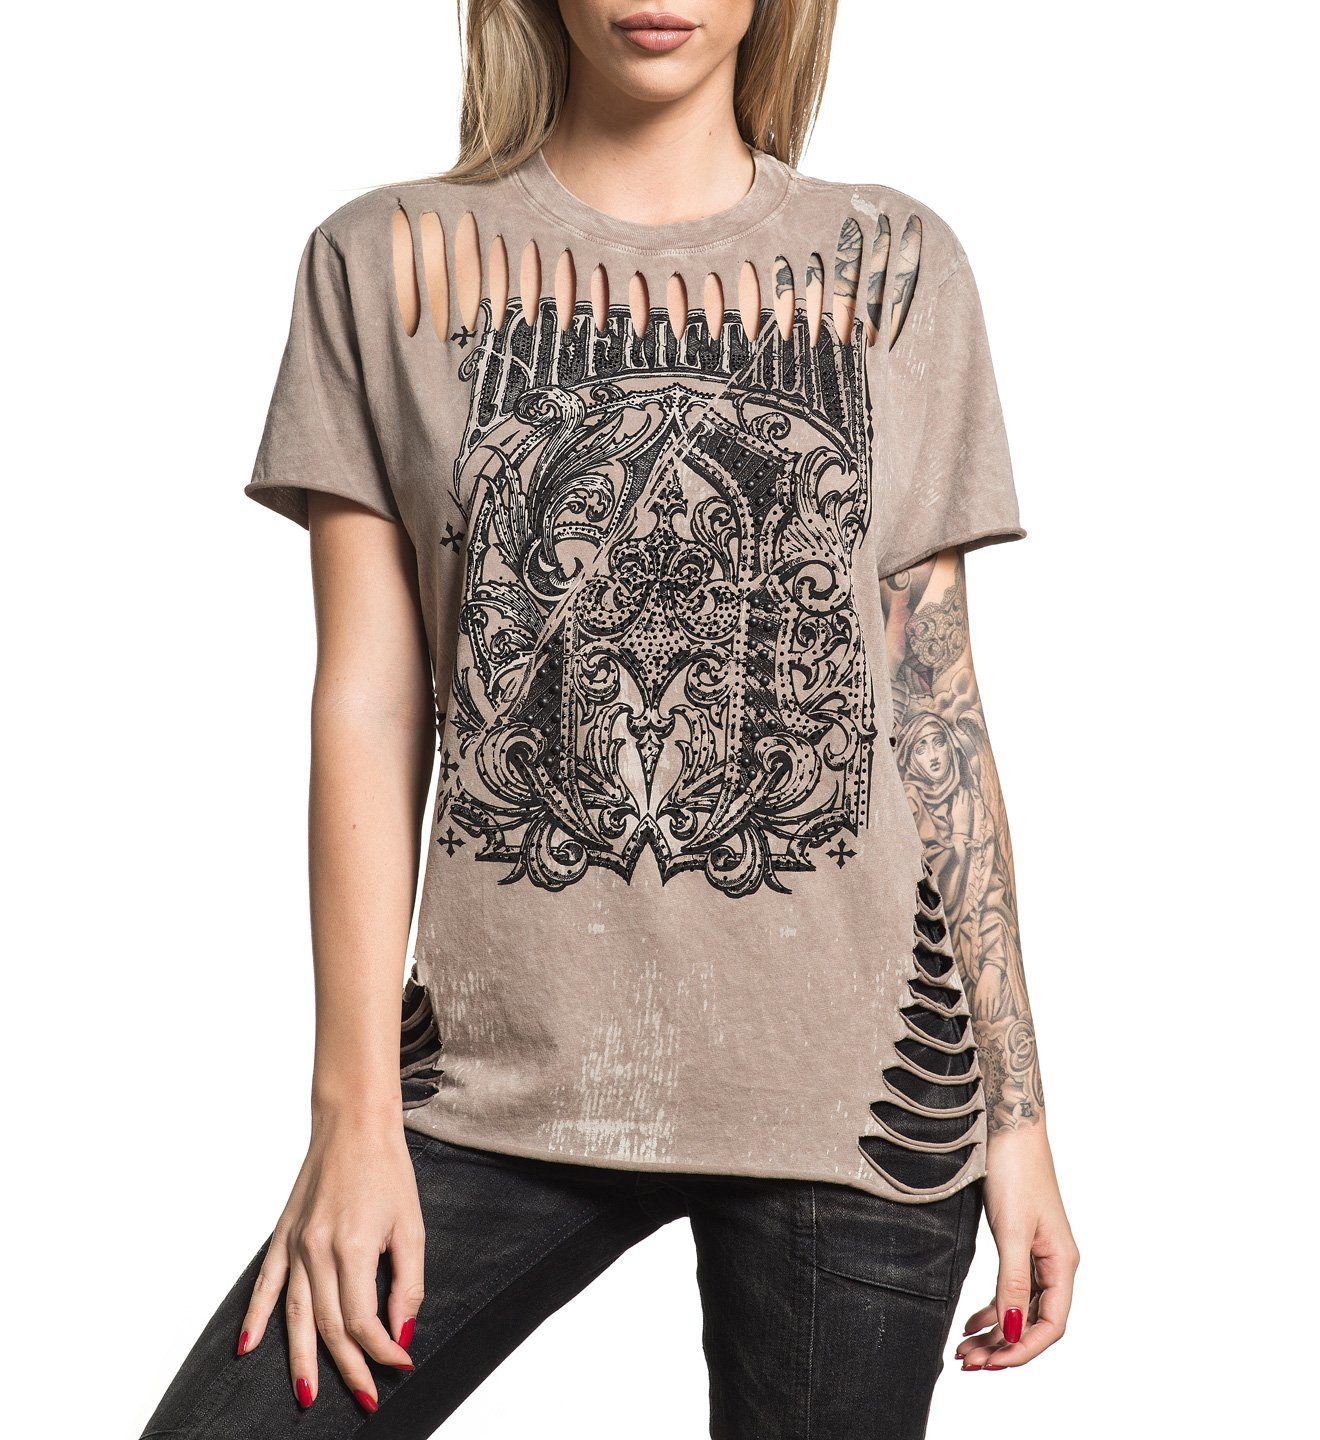 A Frame Split - Womens Short Sleeve Tees - Affliction Clothing